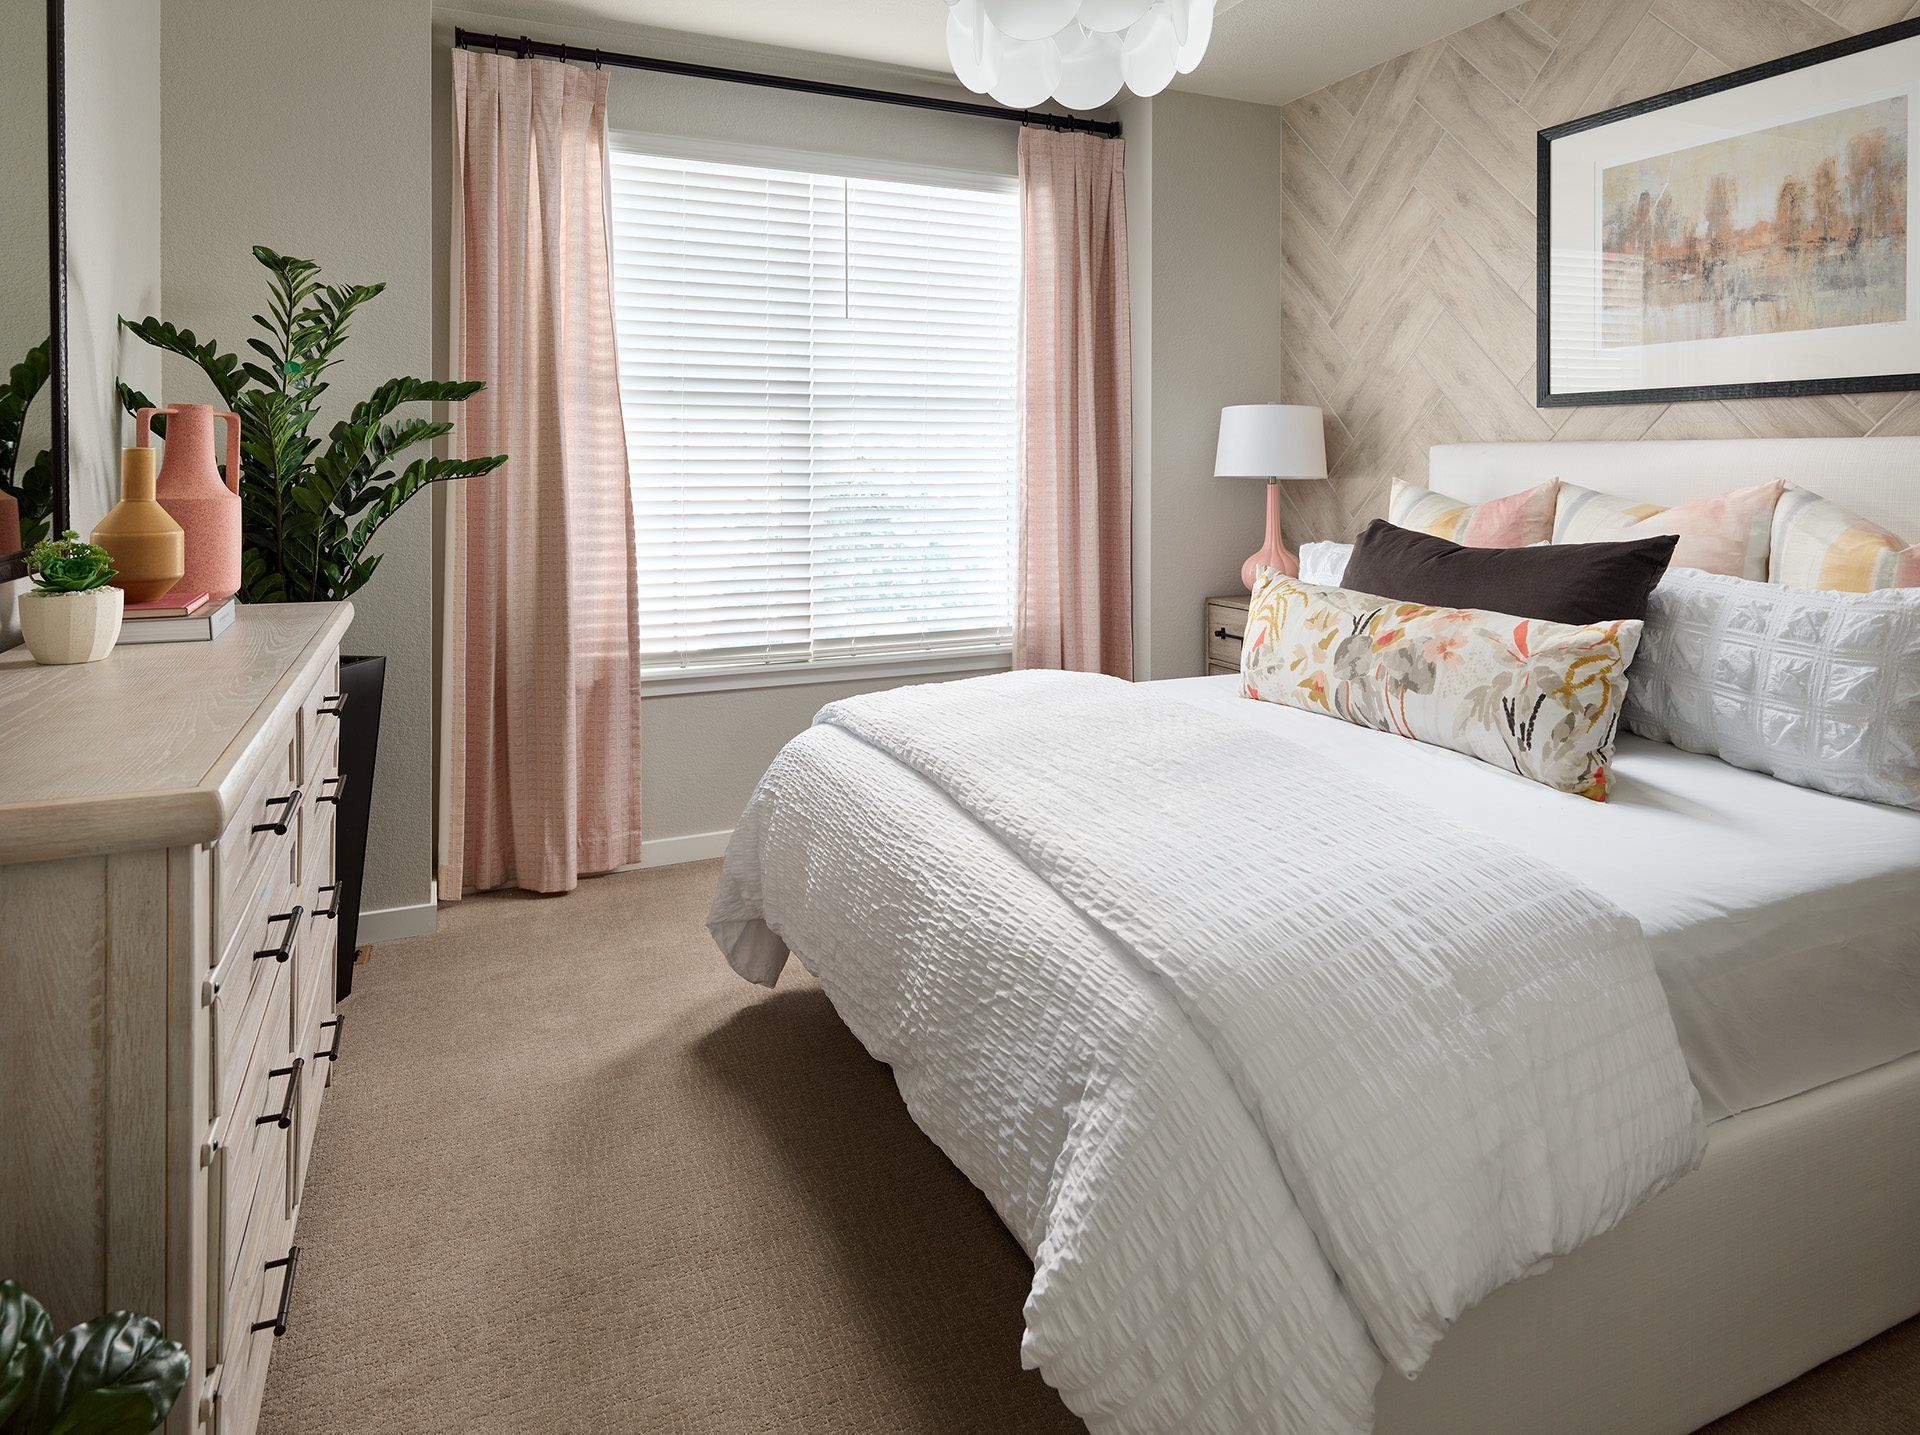 Bedroom featured in the Snowmass By Lennar in Denver, CO